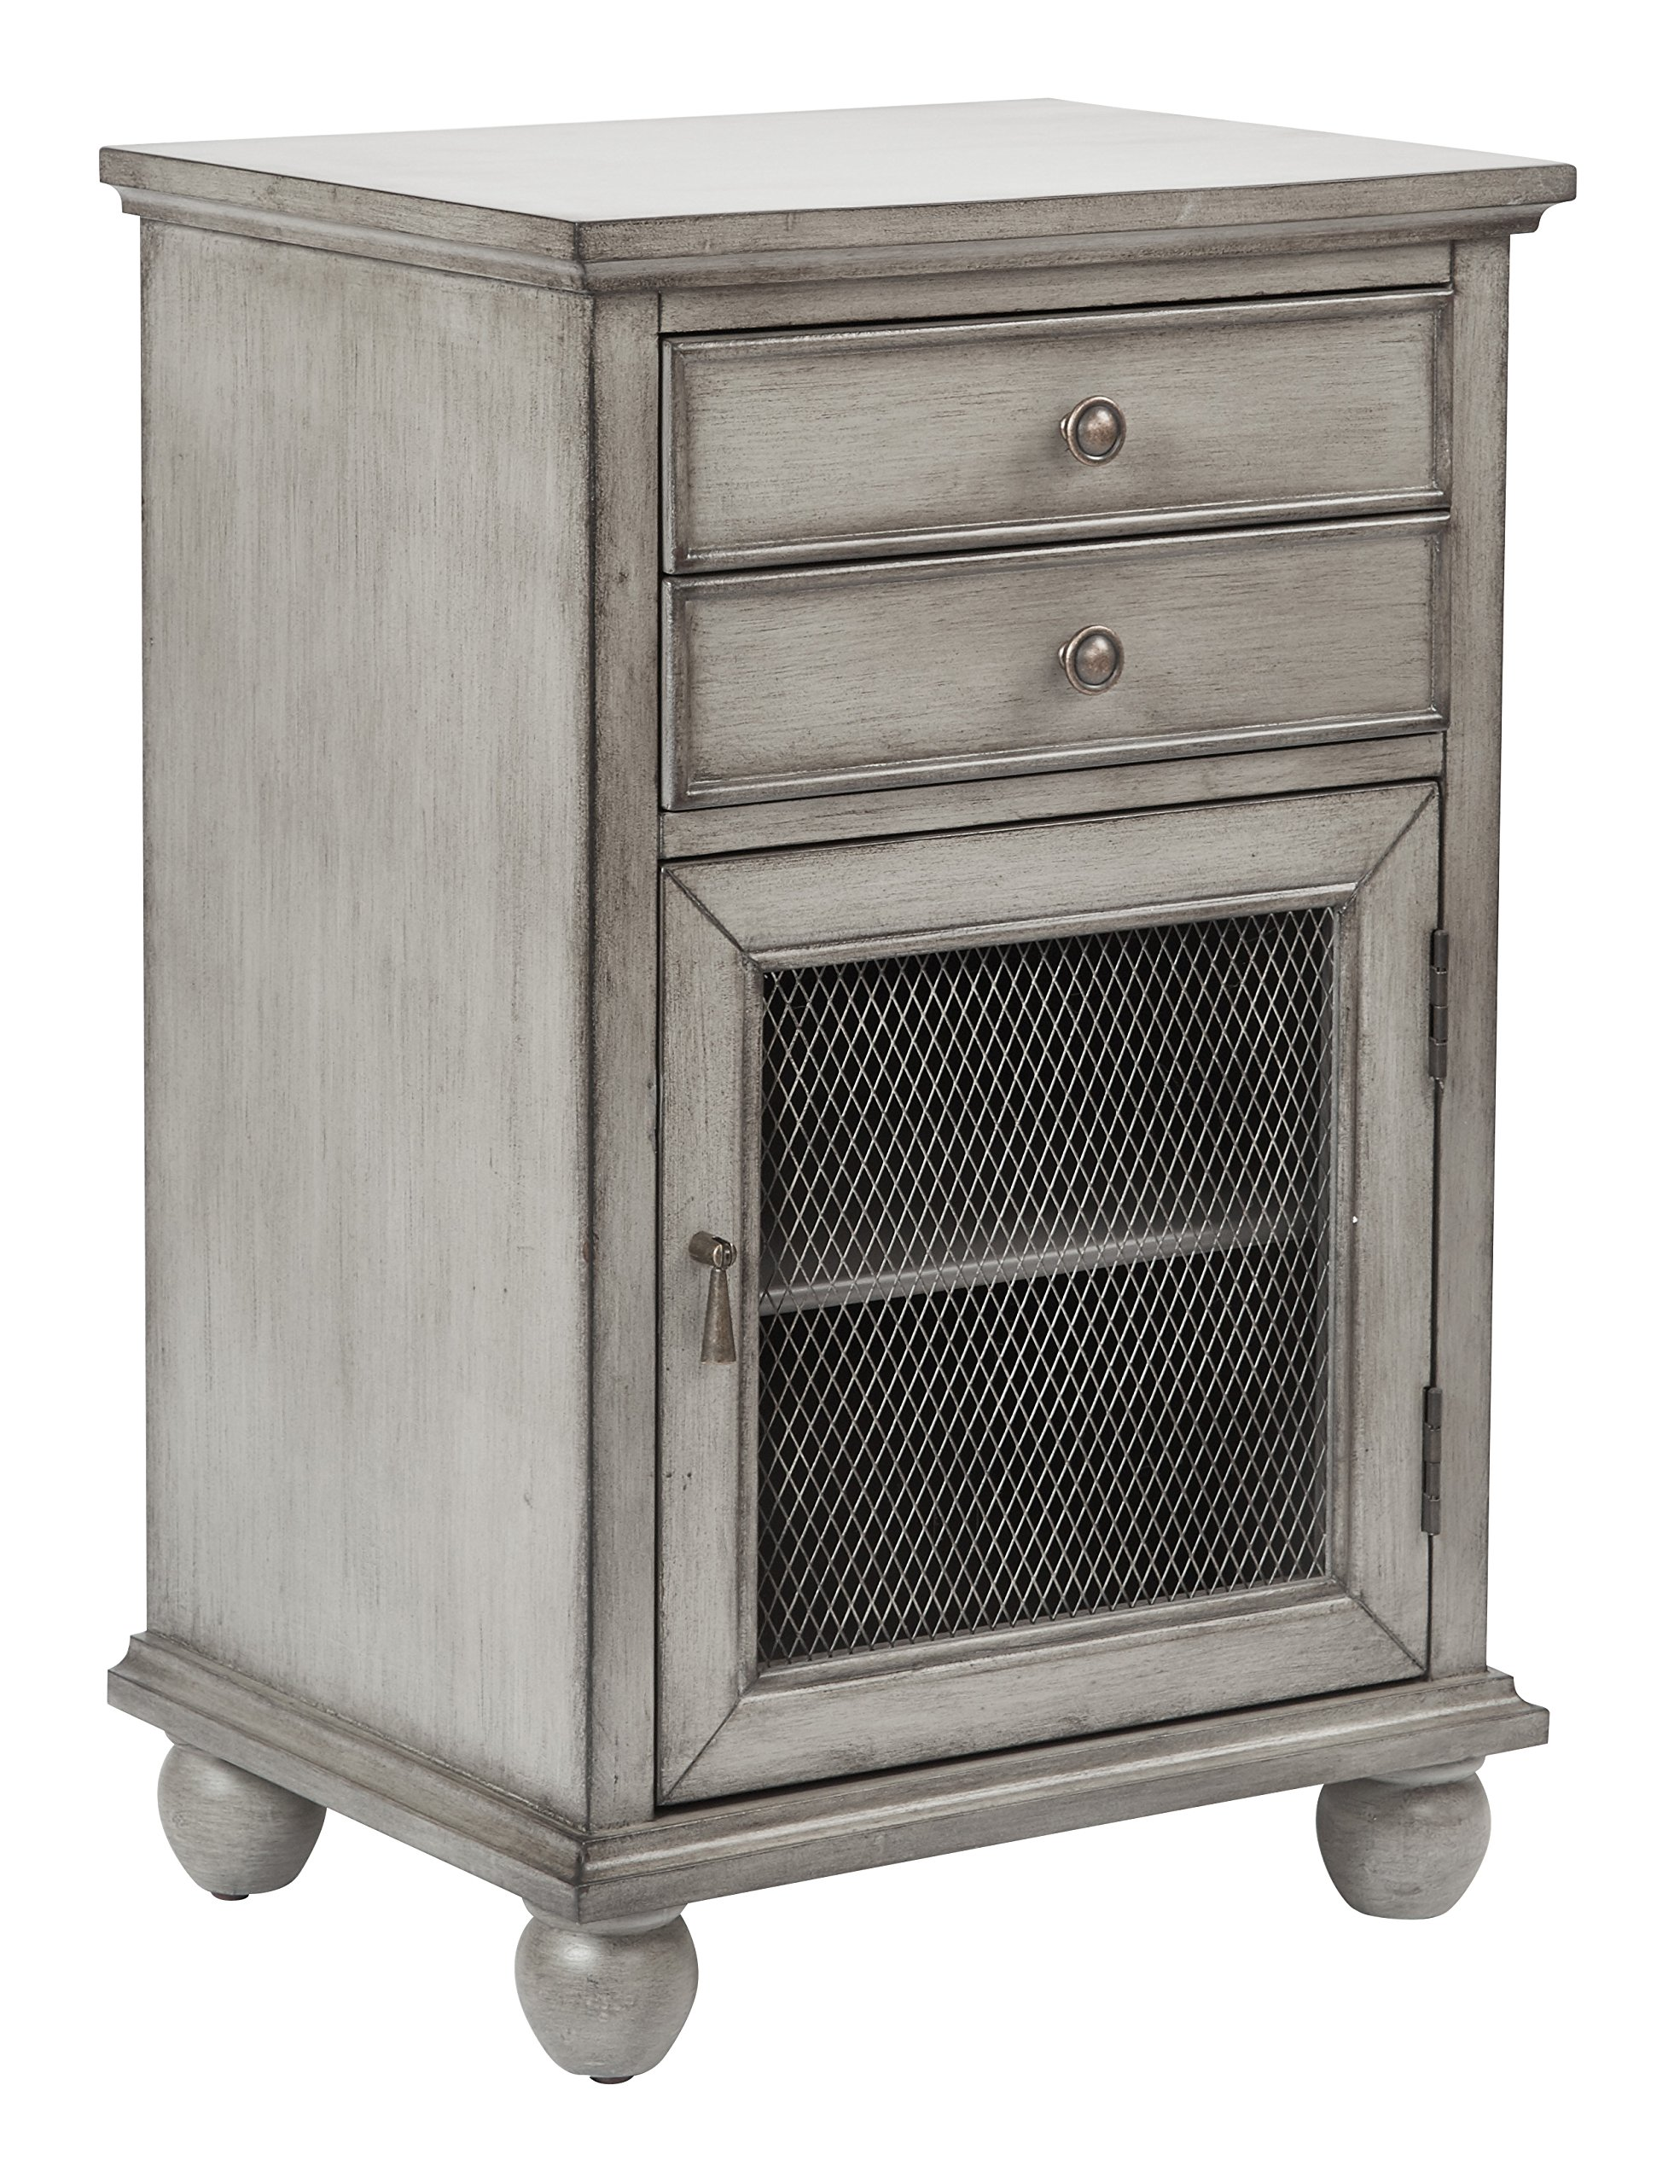 INSPIRED by Bassett Alton Hand Painted Storage Cabinet, Antique Ash Grey